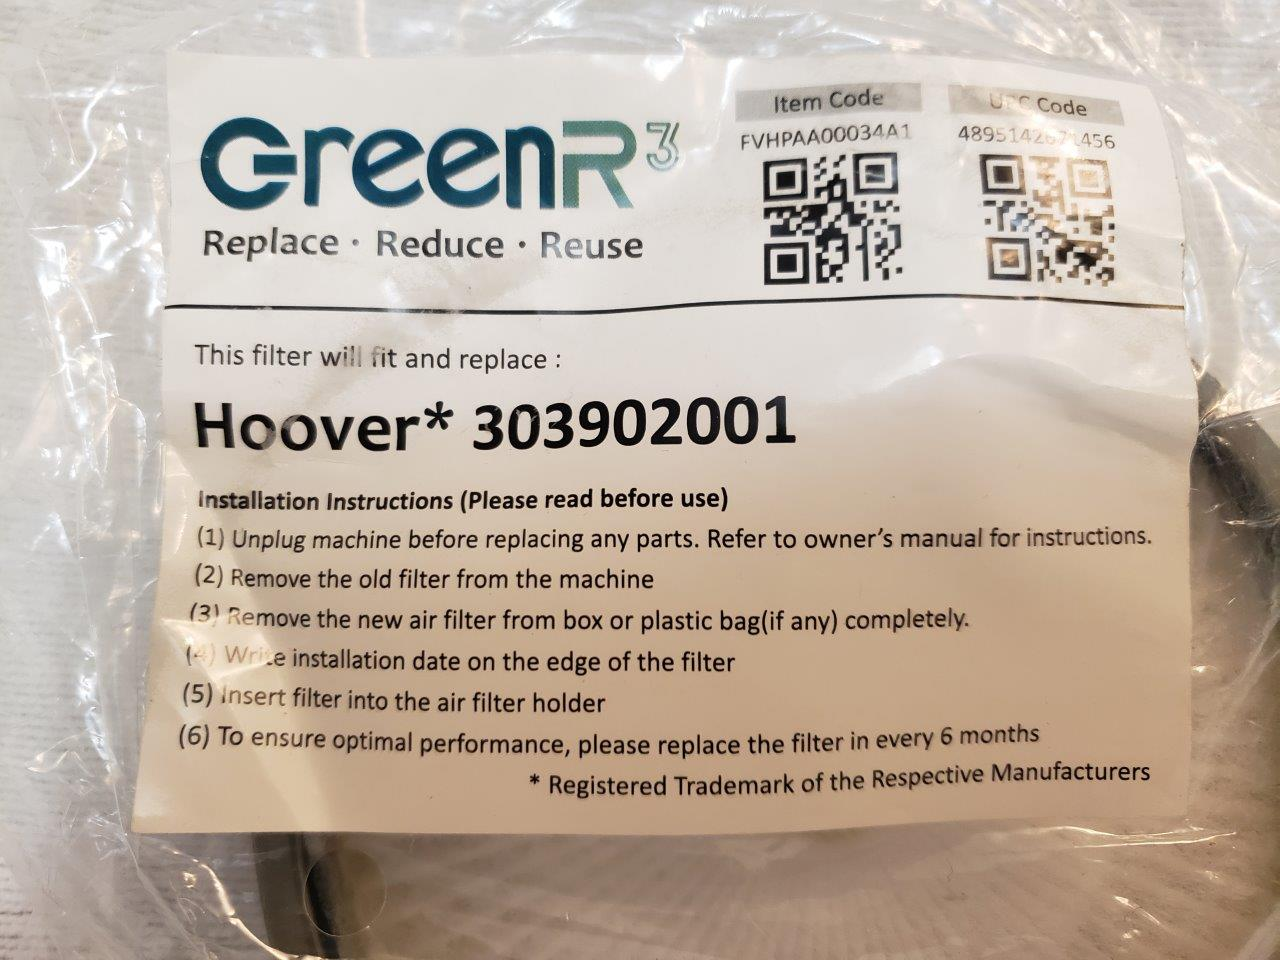 2x Hoover 303903001 and 303902001 WindTunnel Air Bagless Upright Filter Kit, fits UH70400, UH70405 Models